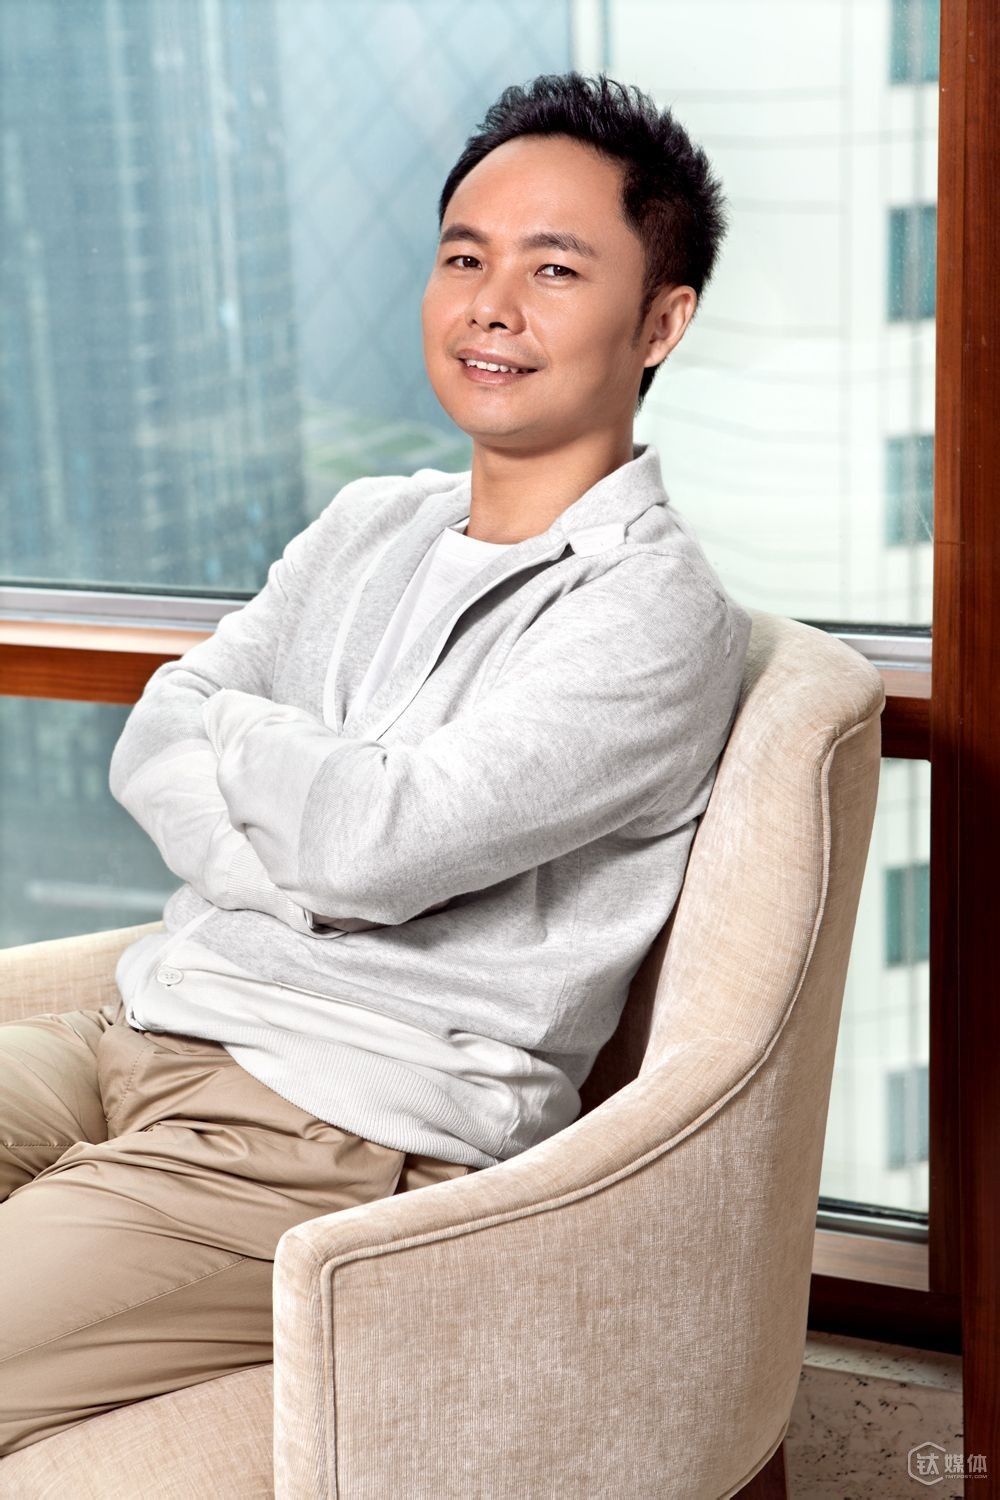 Chen Mingyong, the founder of OPPO